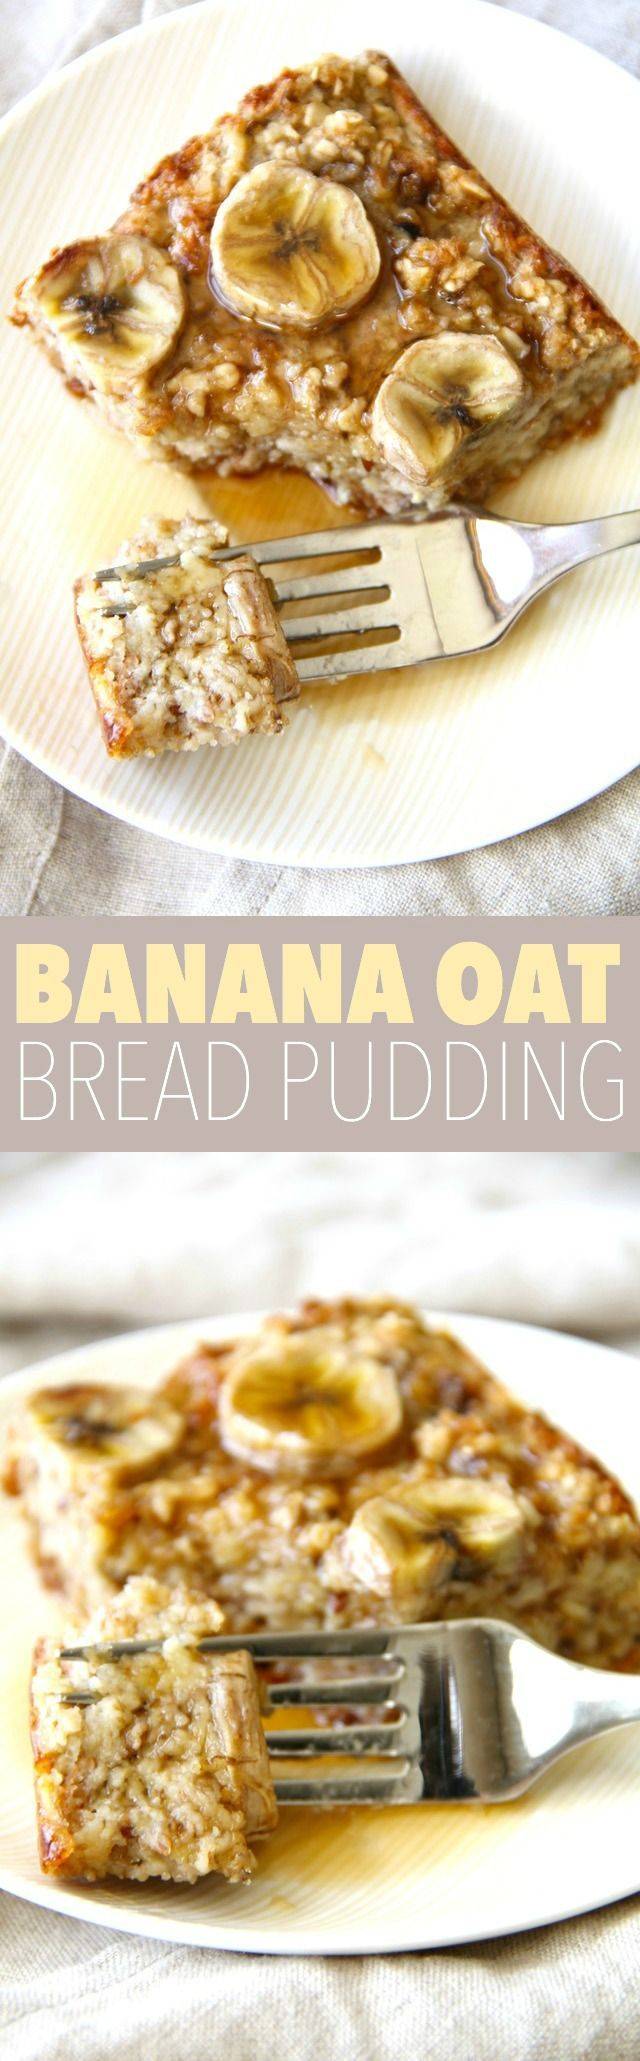 Banana Oat Bread Pudding - refined sugar free, easily made gluten-free, and packed with fiber and protein, this healthy bread pudding is an easy and delicious make-ahead breakfast option that's perfect for those on-the-go mornings! || runningwithspoons... #breakfast #healthy #eggs